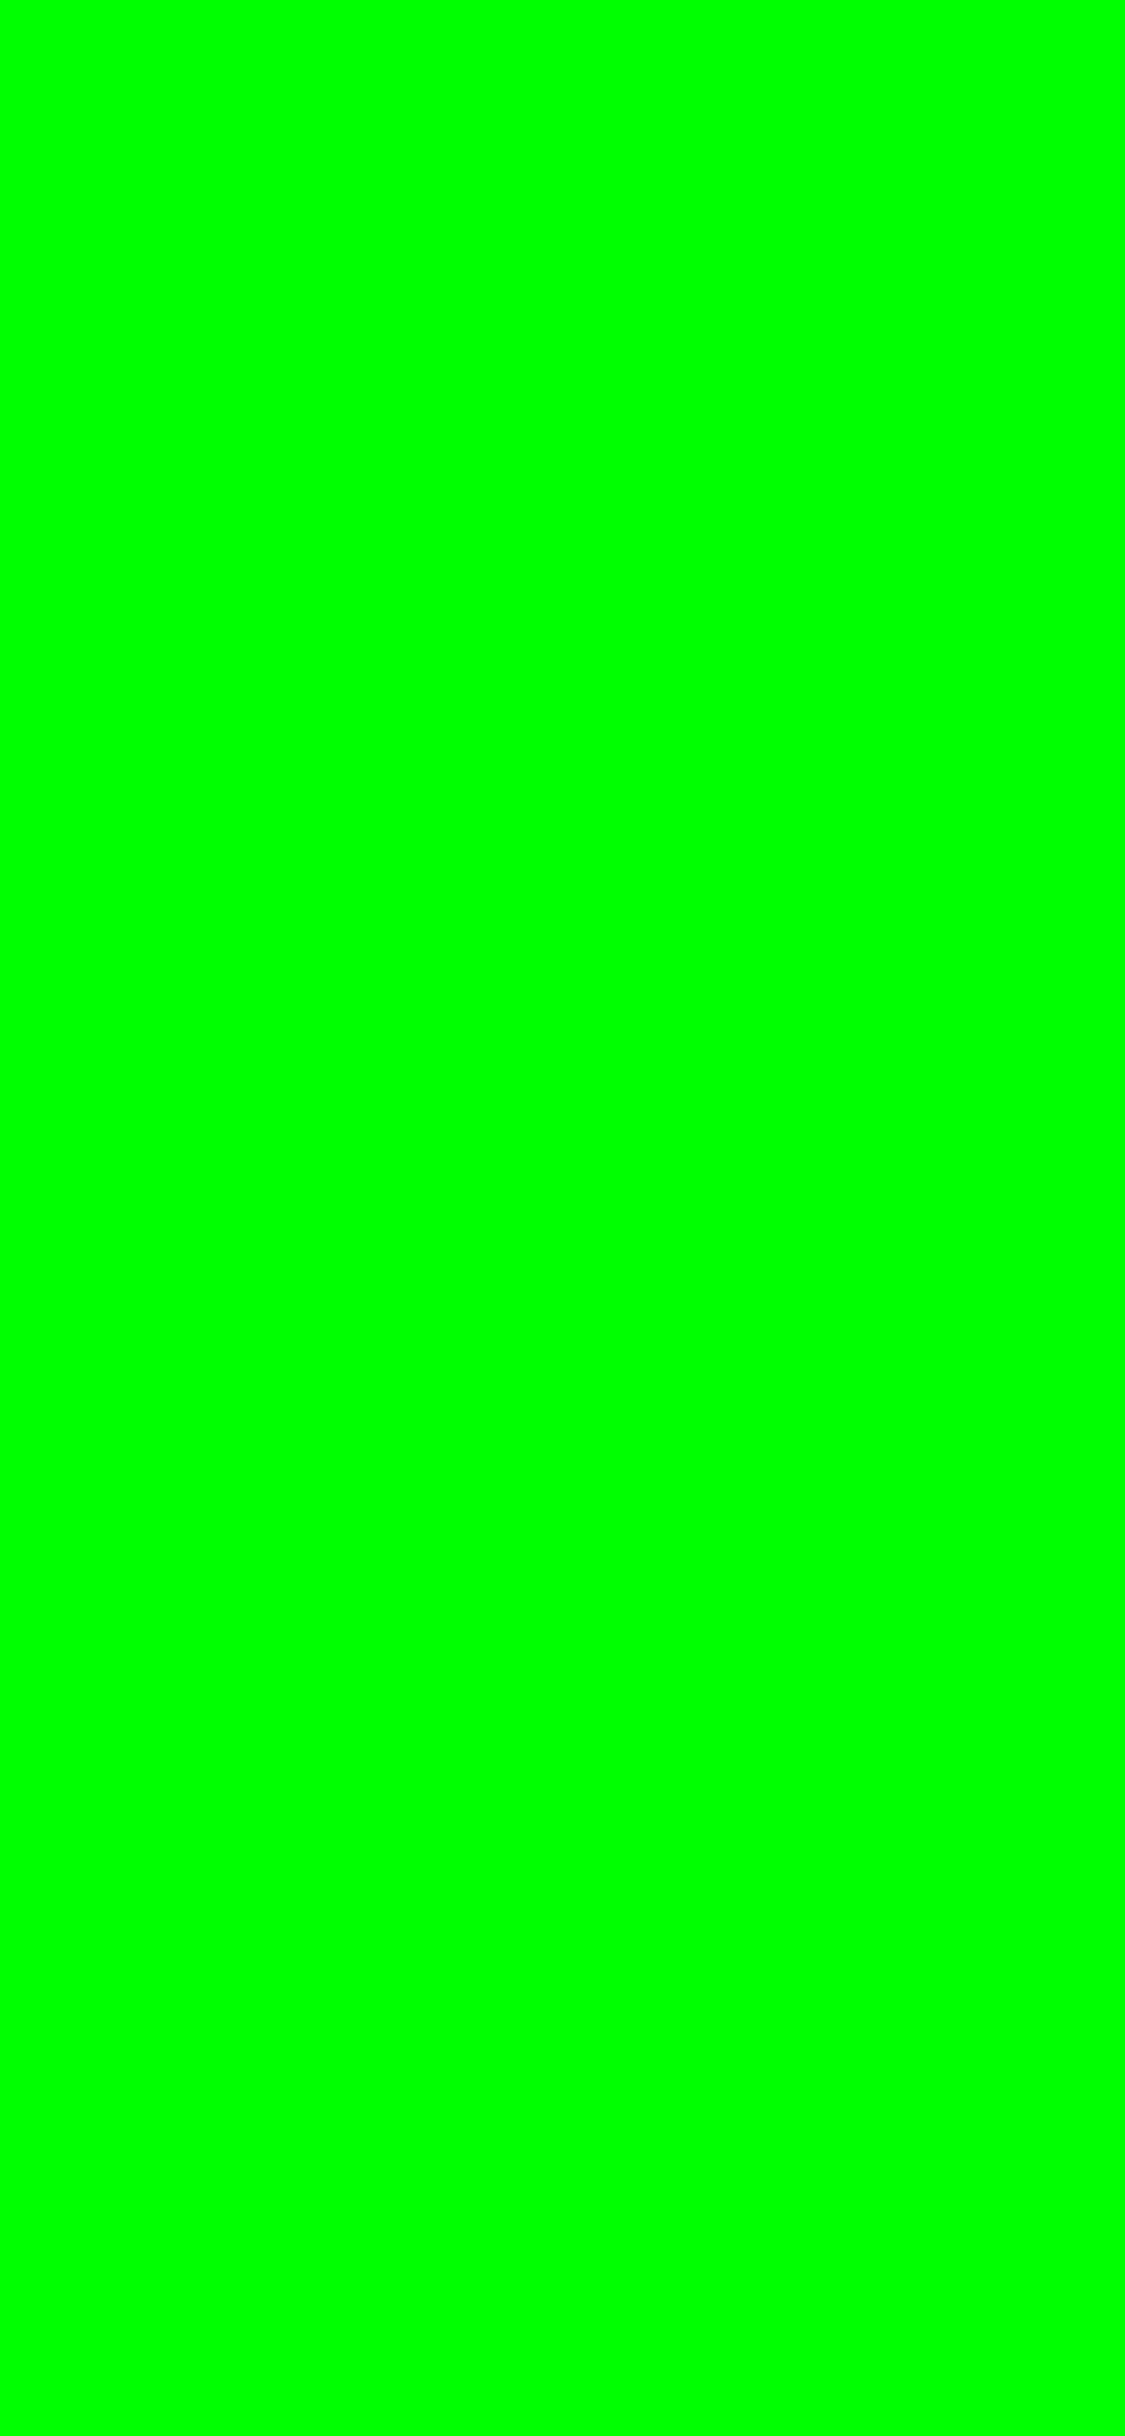 1125x2436 Green X11 Gui Green Solid Color Background